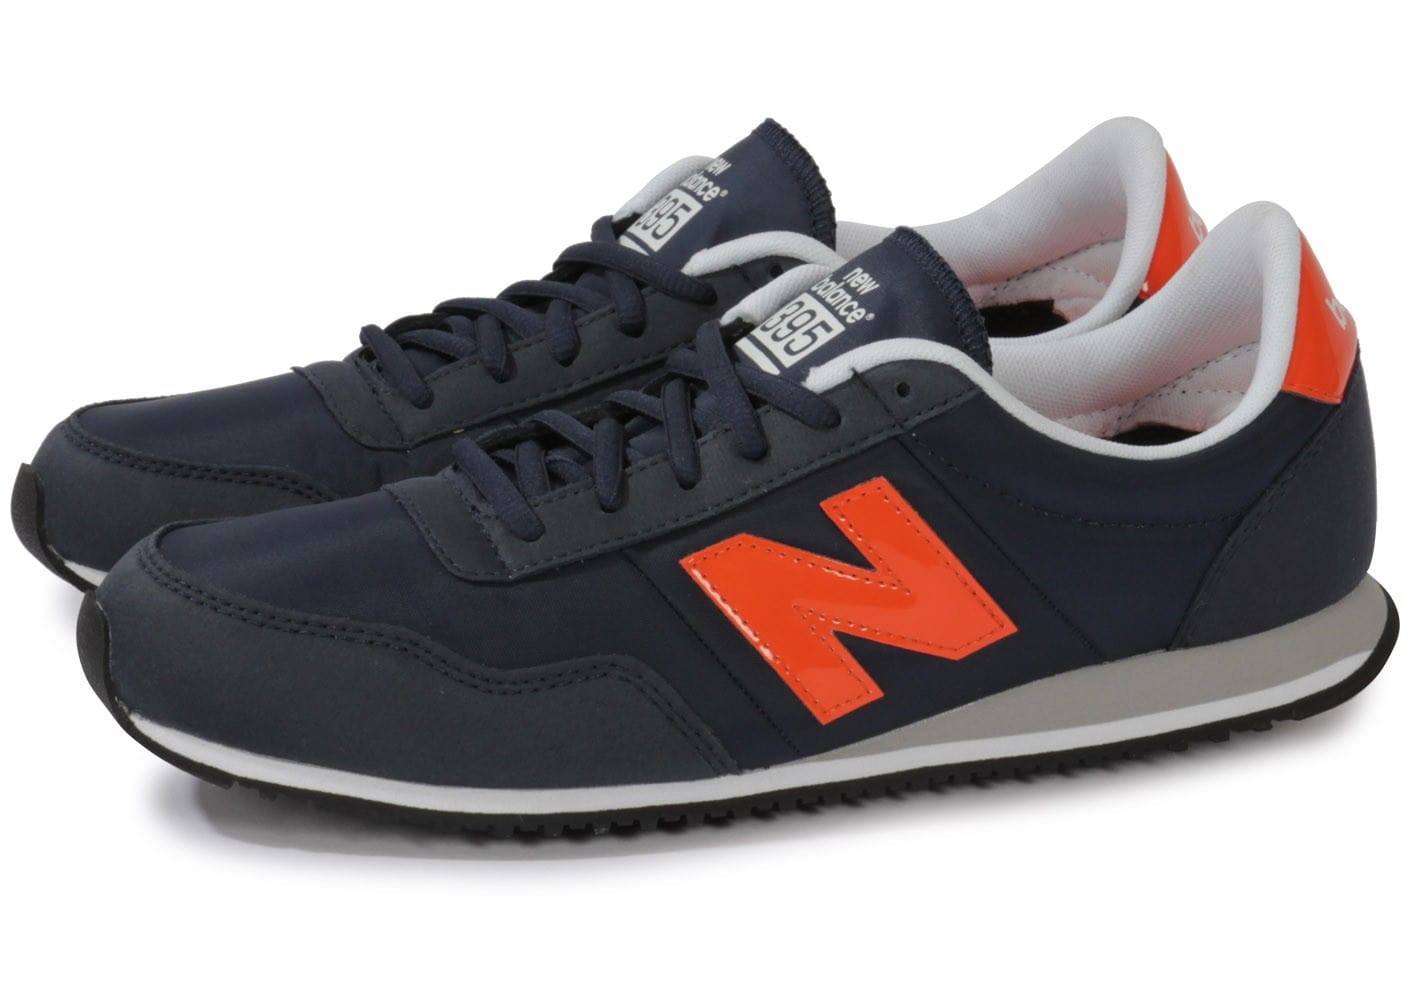 new balance u395 mnno bleu marine et orange chaussures homme chausport. Black Bedroom Furniture Sets. Home Design Ideas